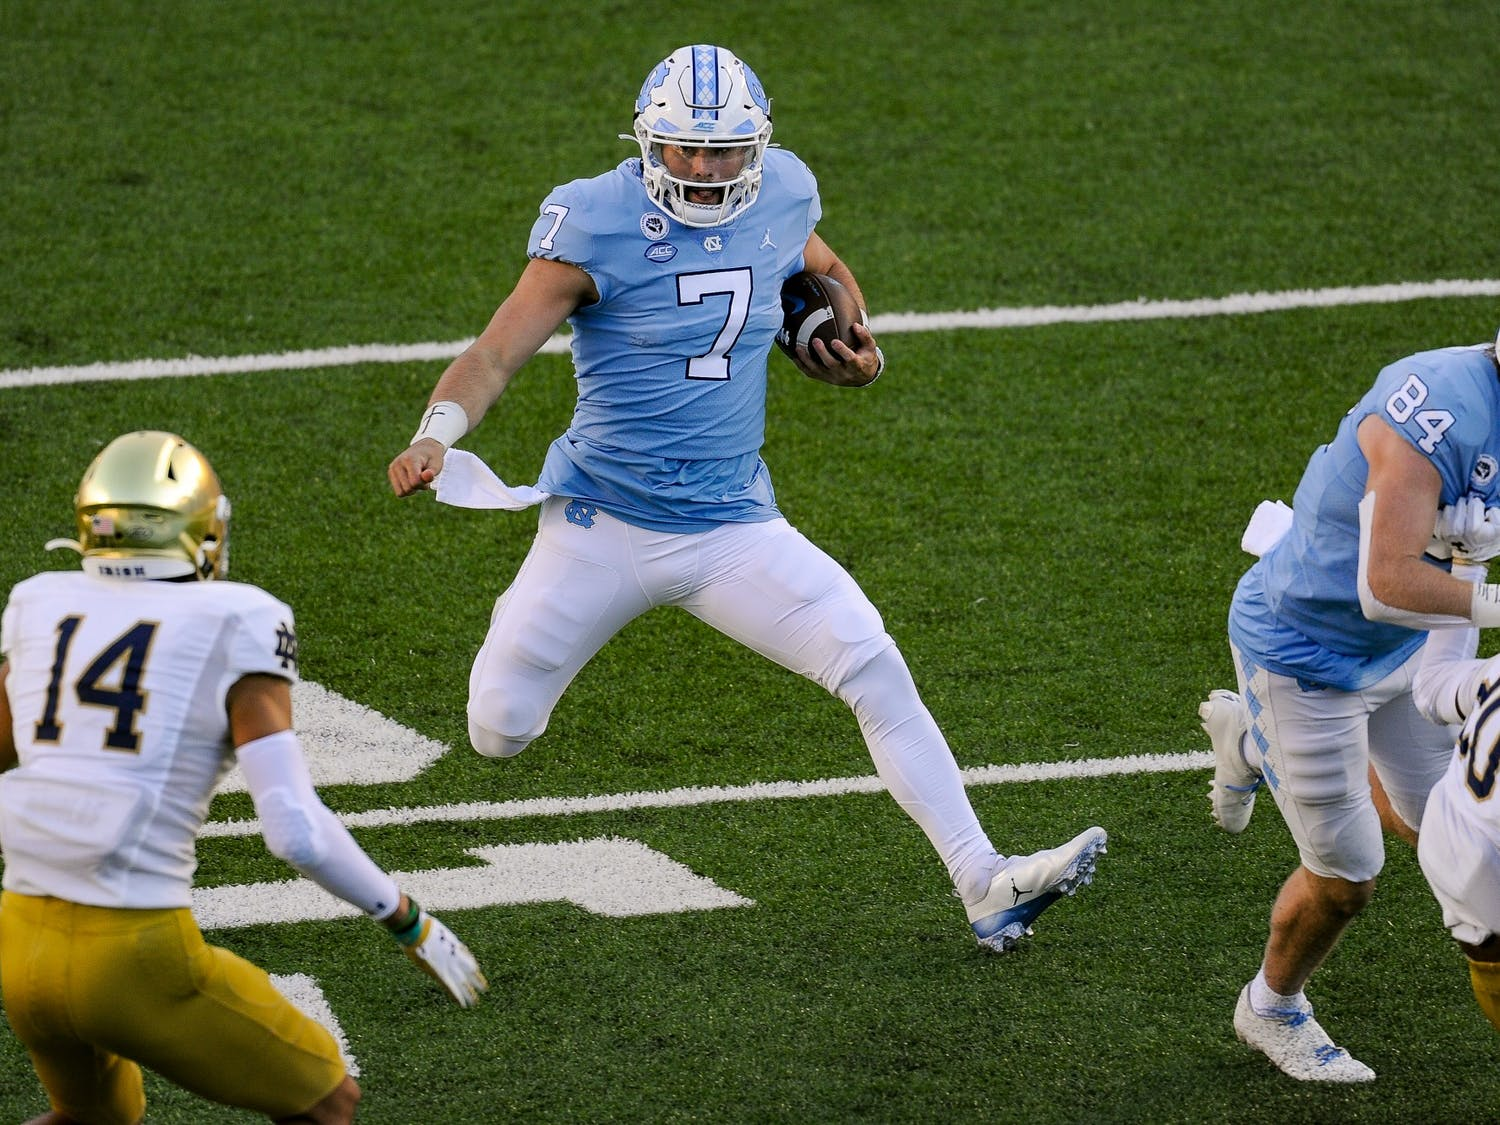 UNC's sophomore quarterback Sam Howell (7) runs the ball during a game against Notre Dame in Kenan Memorial Stadium on Friday, Nov. 27, 2020. Notre Dame beat UNC 31-17.